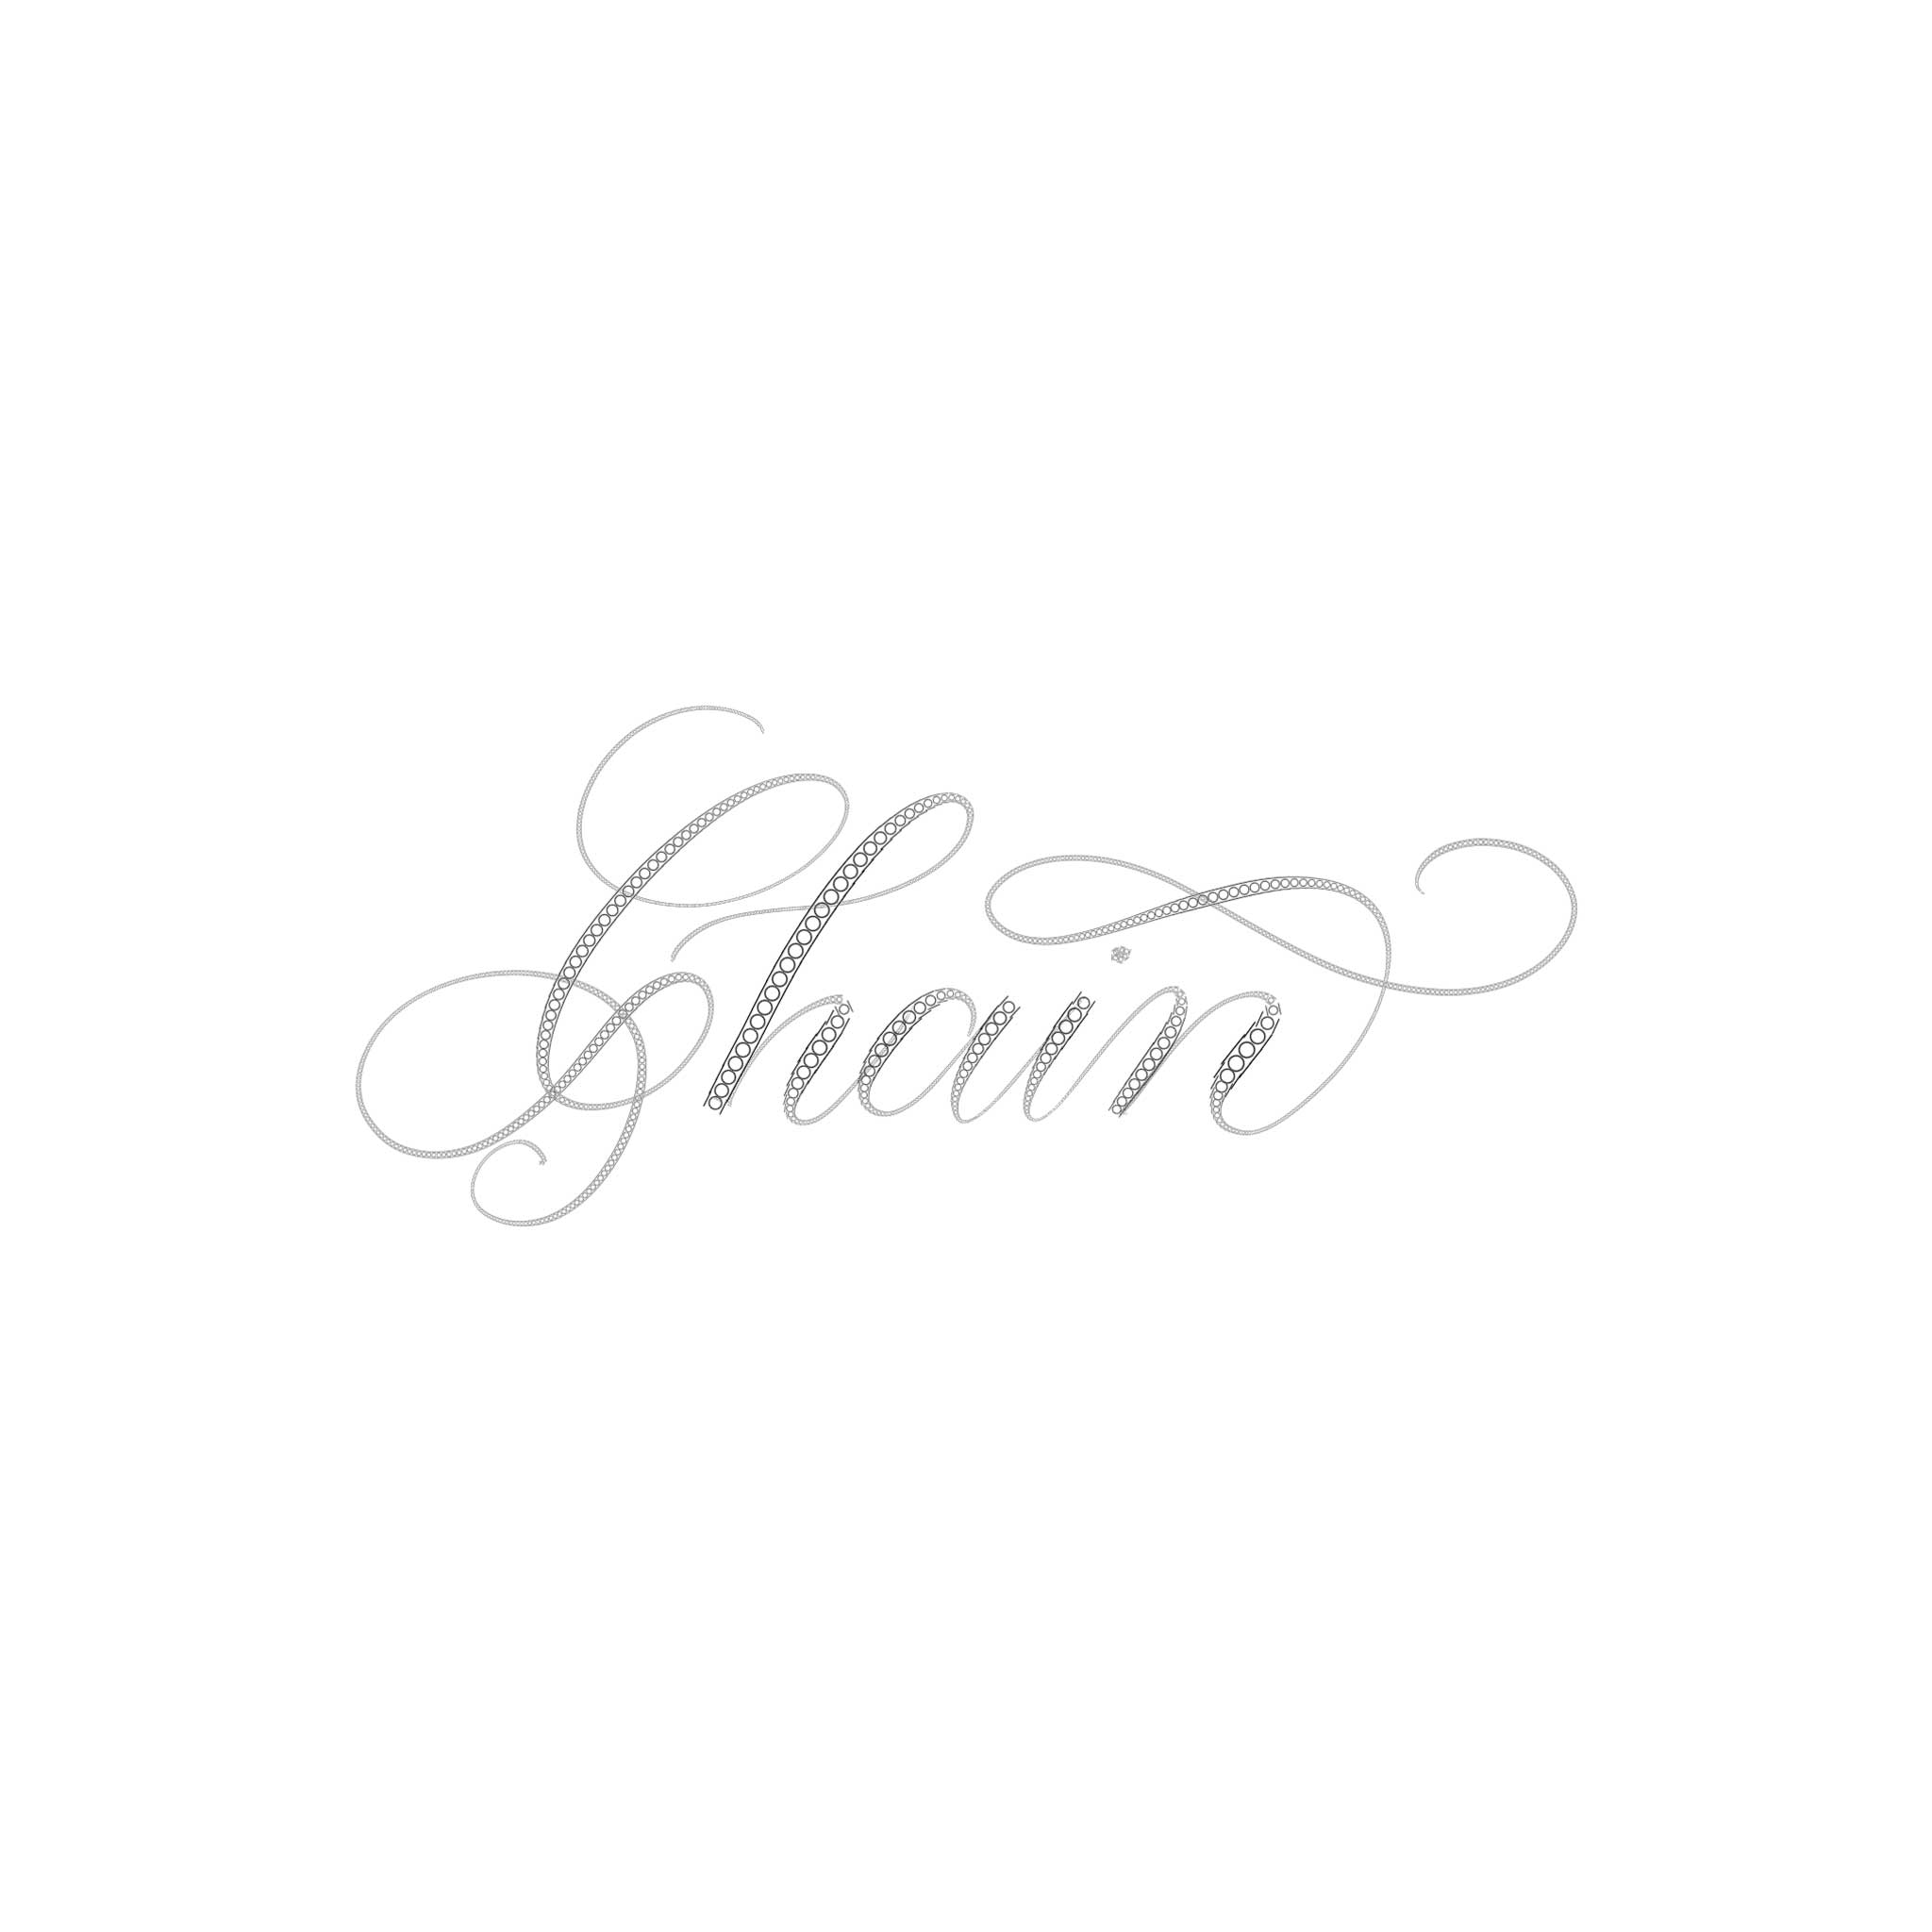 Chain Procreate Lettering Brush